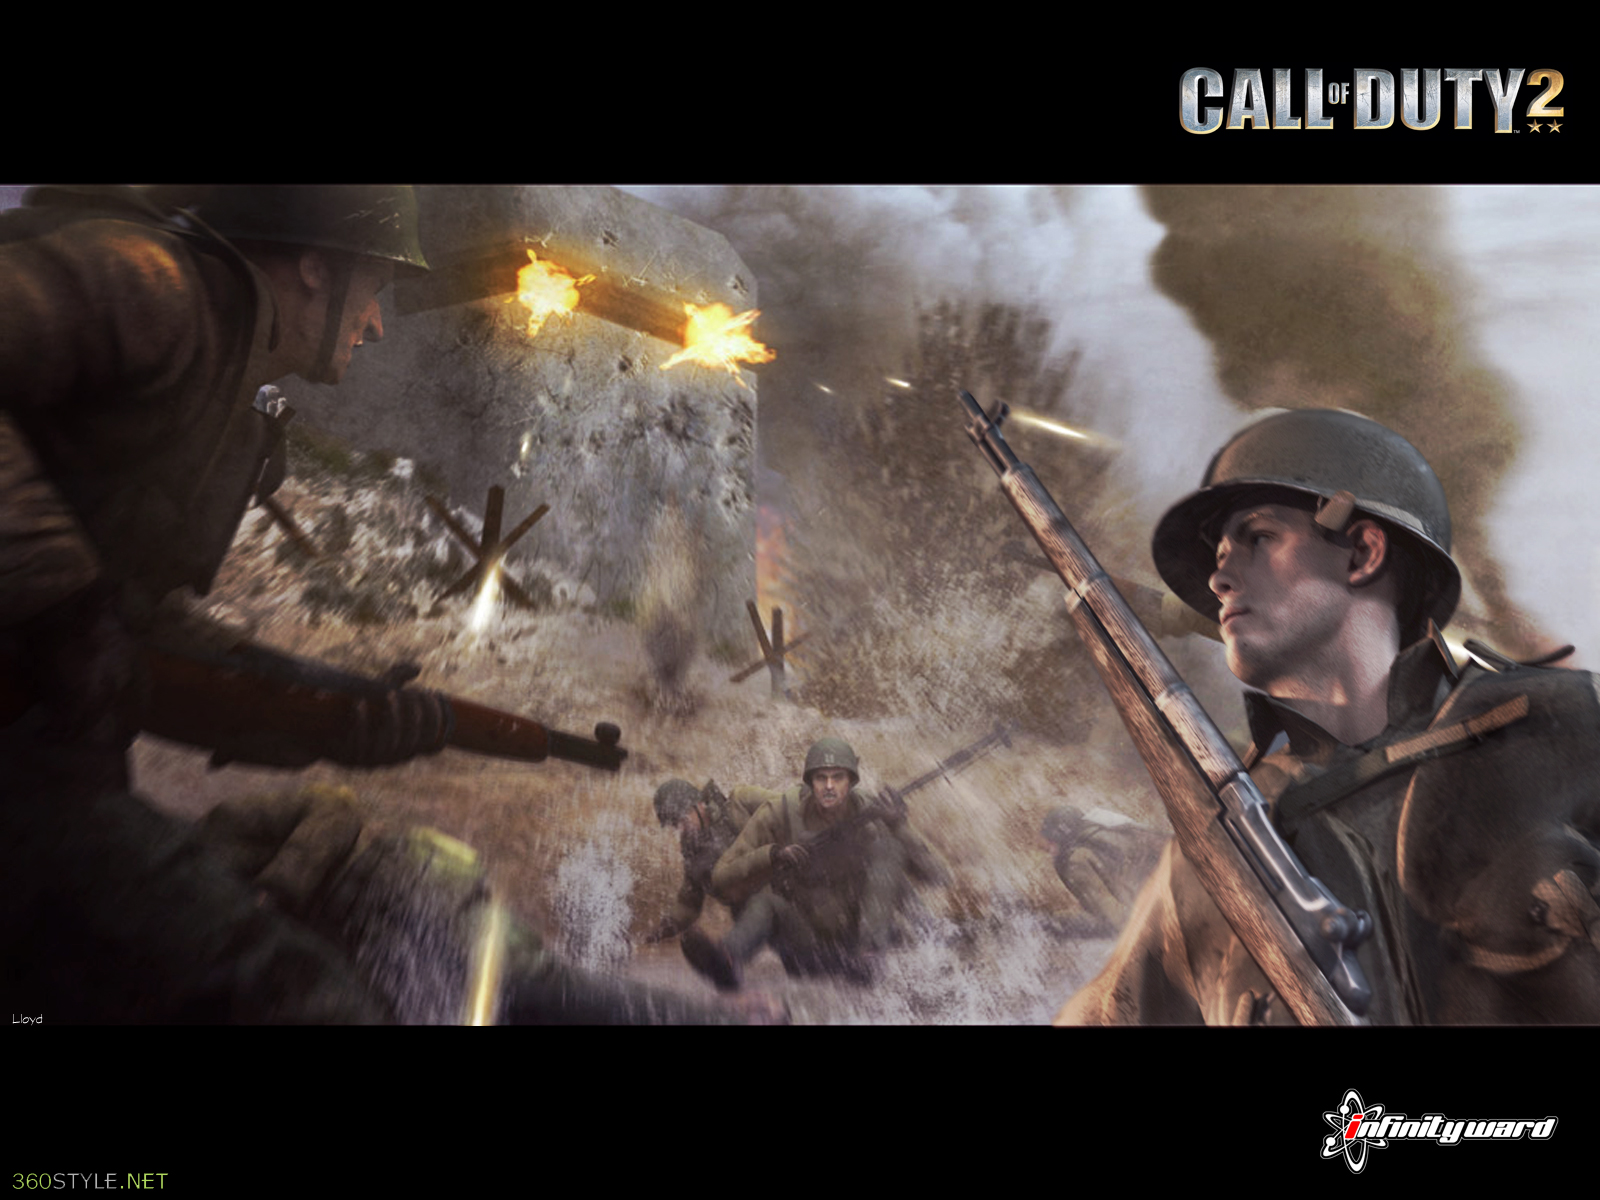 download Call of Duty 2 Wallpaper by igotgame1075 [1600x1200 1600x1200